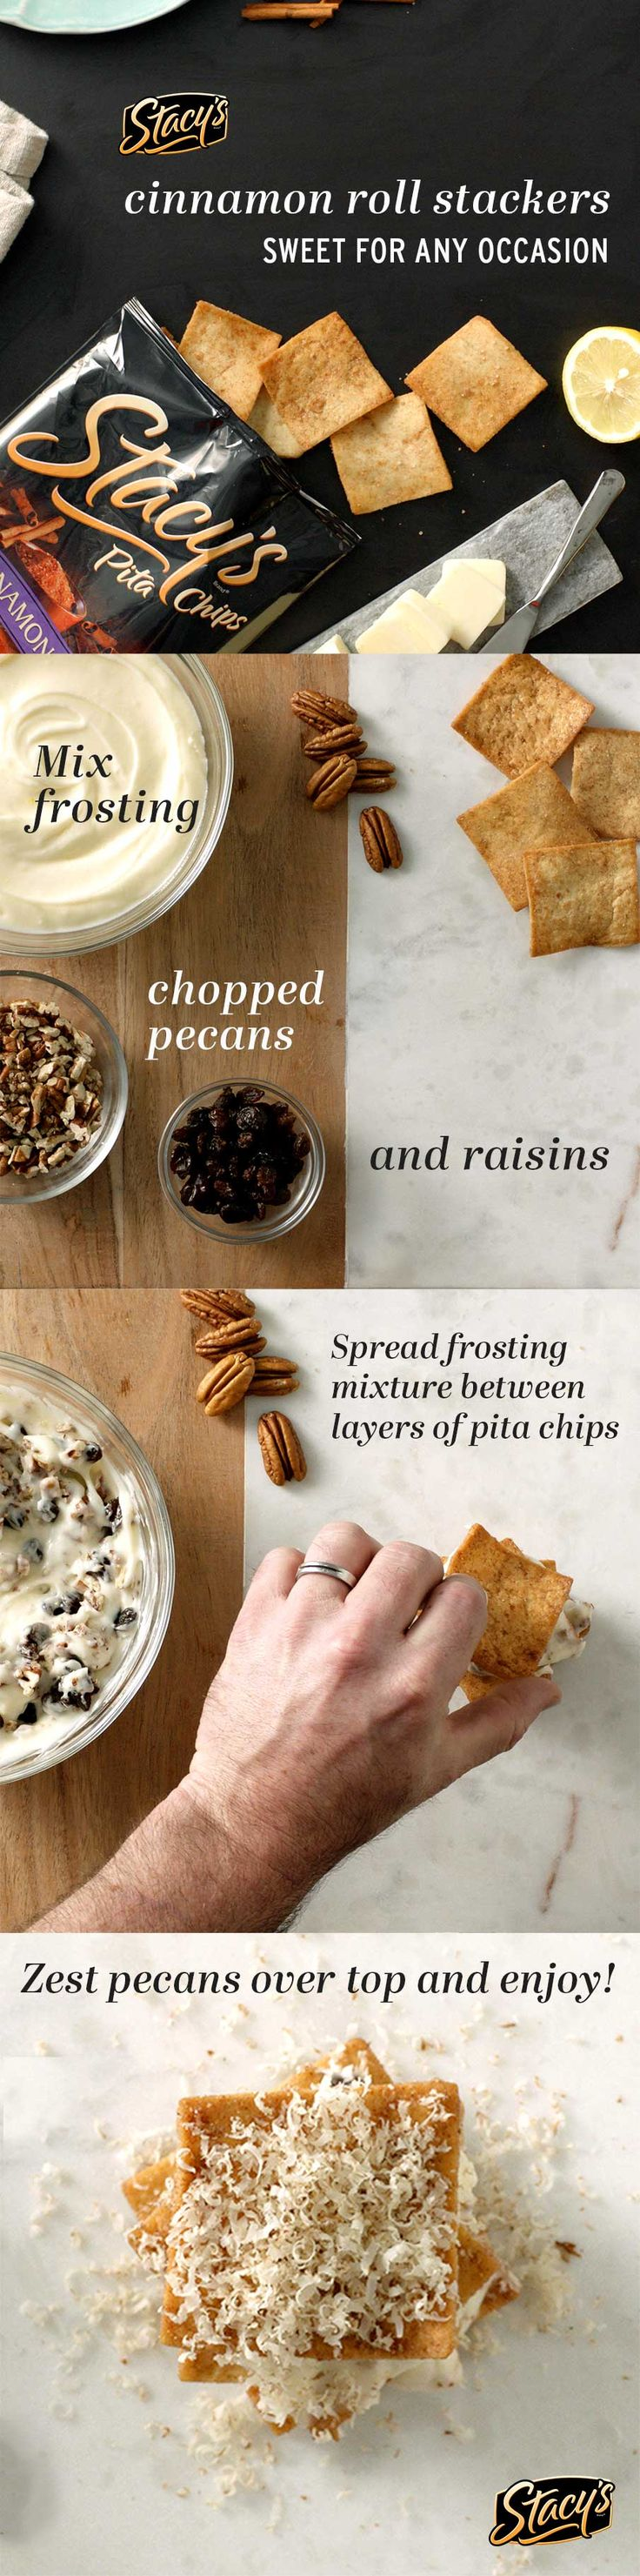 Stacy's® Cinnamon Sugar Pita Chips, cream cheese frosting, raisins, and toasted pecans are the perfect combination for a sweet treat that's simple to create in under 15 minutes!